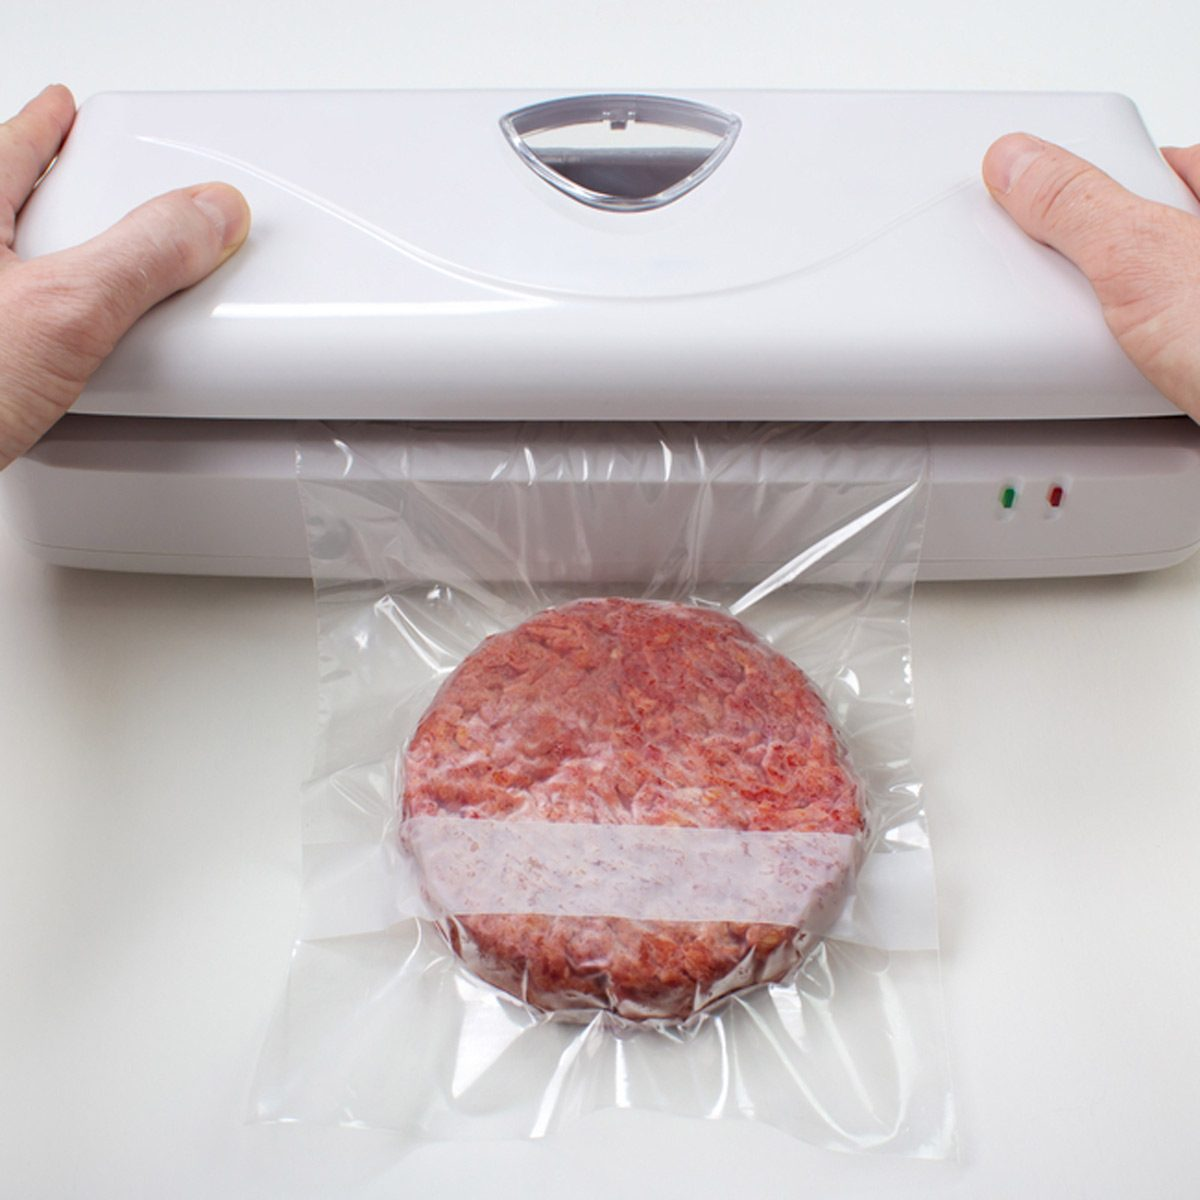 vacuum sealing hamburger freezing